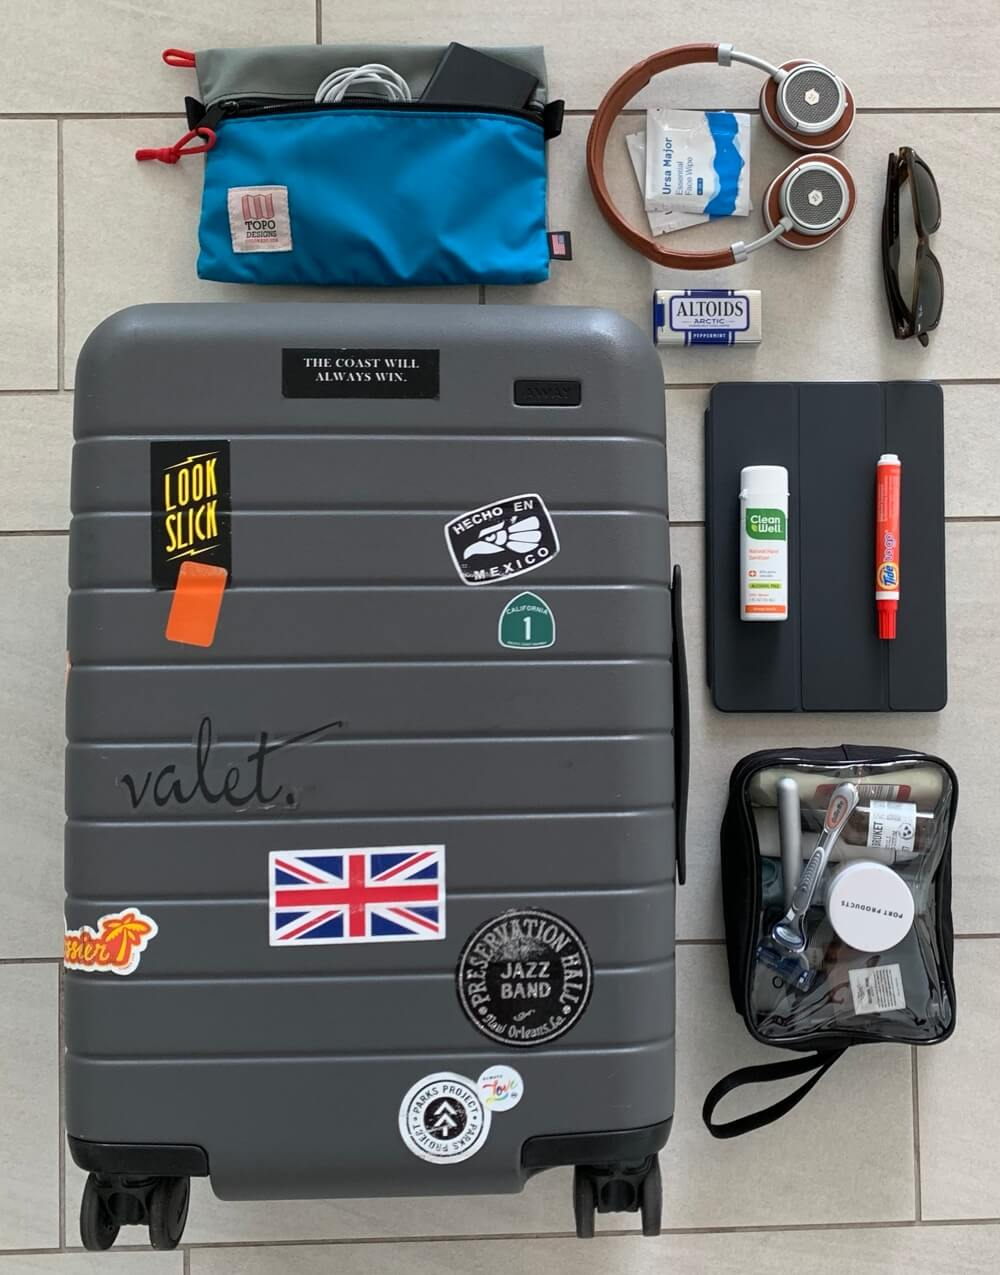 Cory Ohlendorf, Valet.'s editor, travel kit